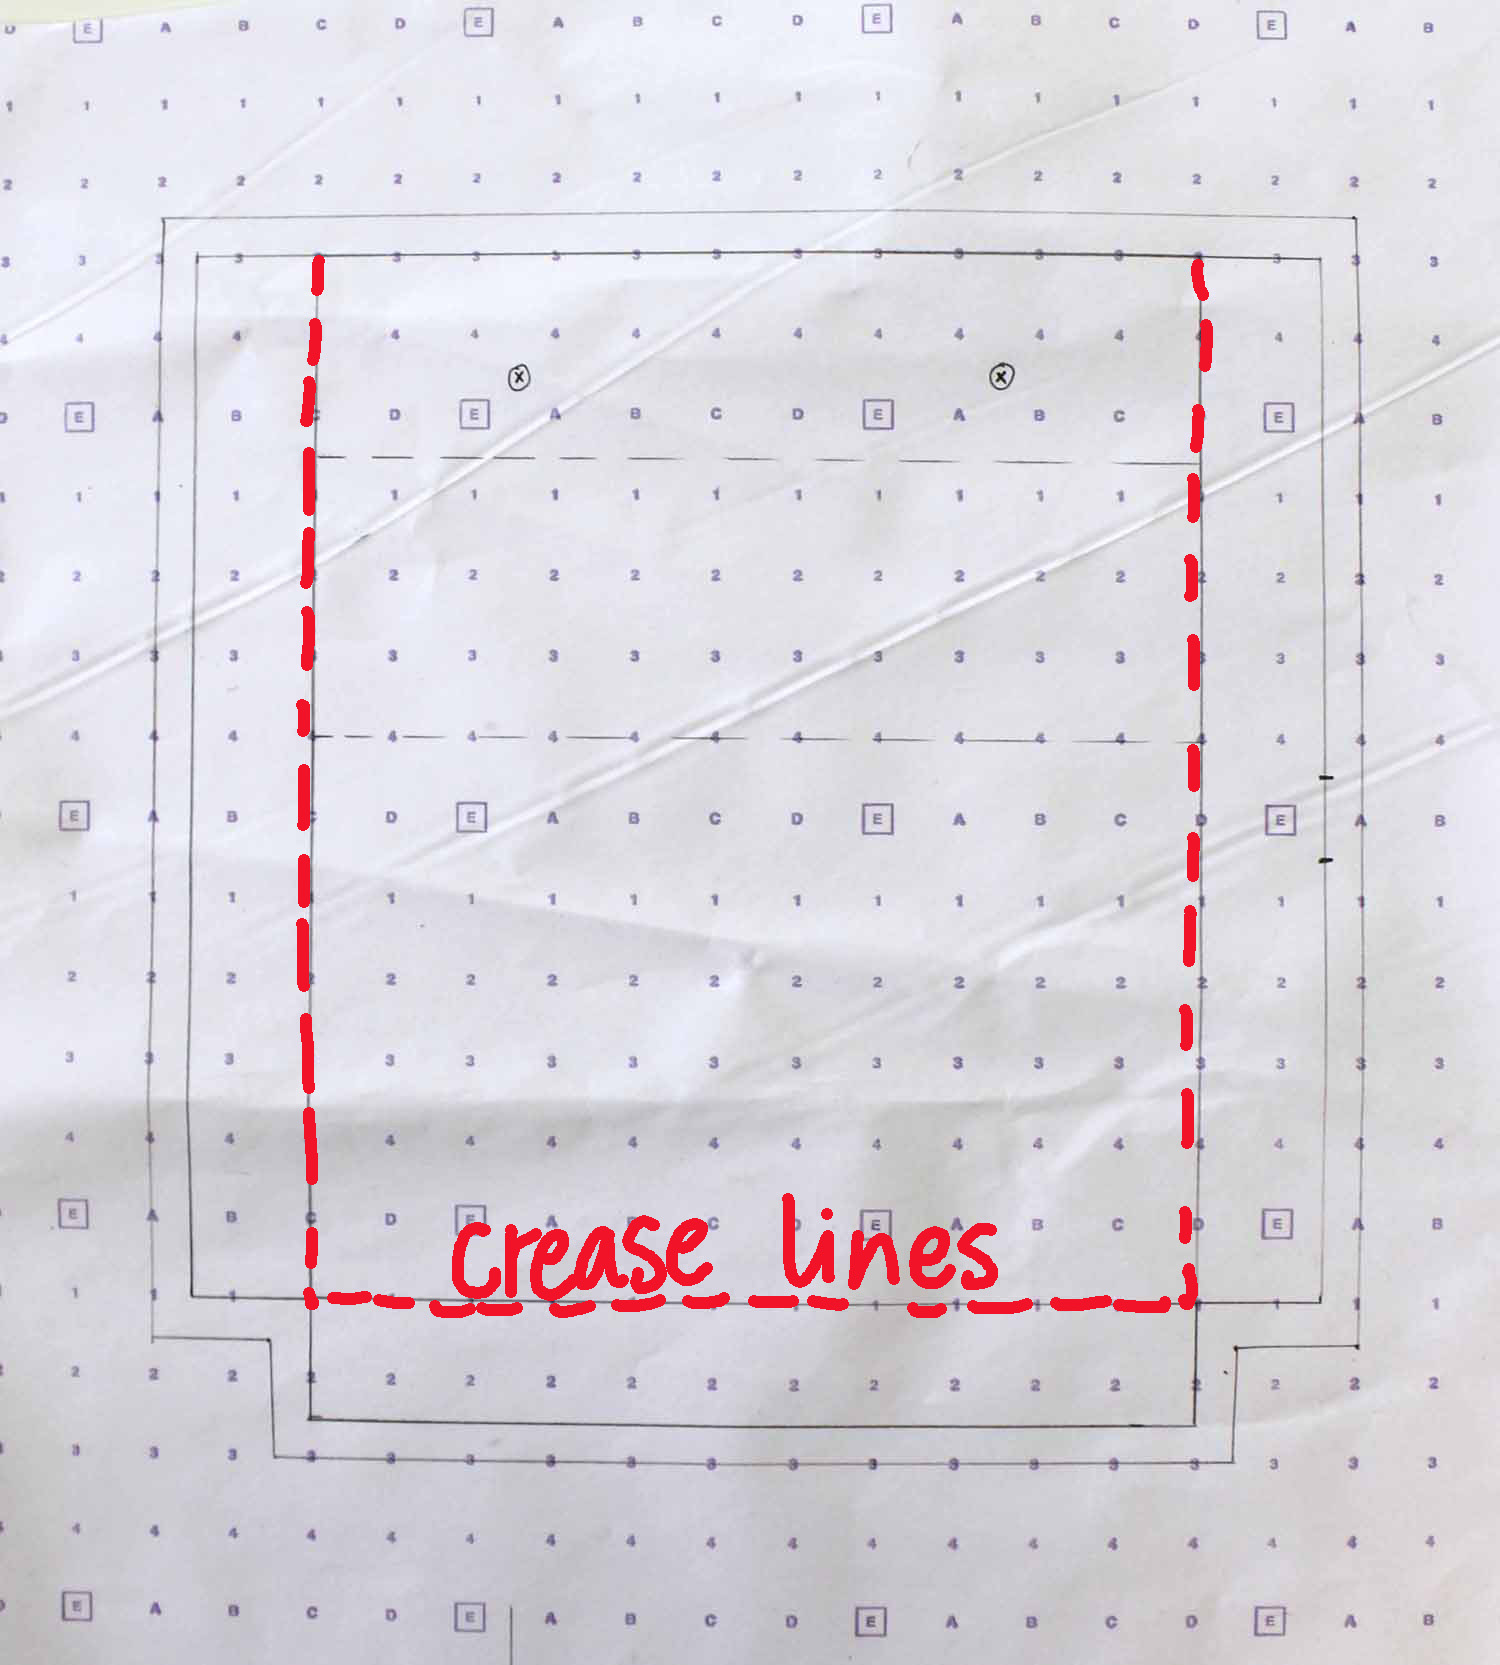 S crease lines